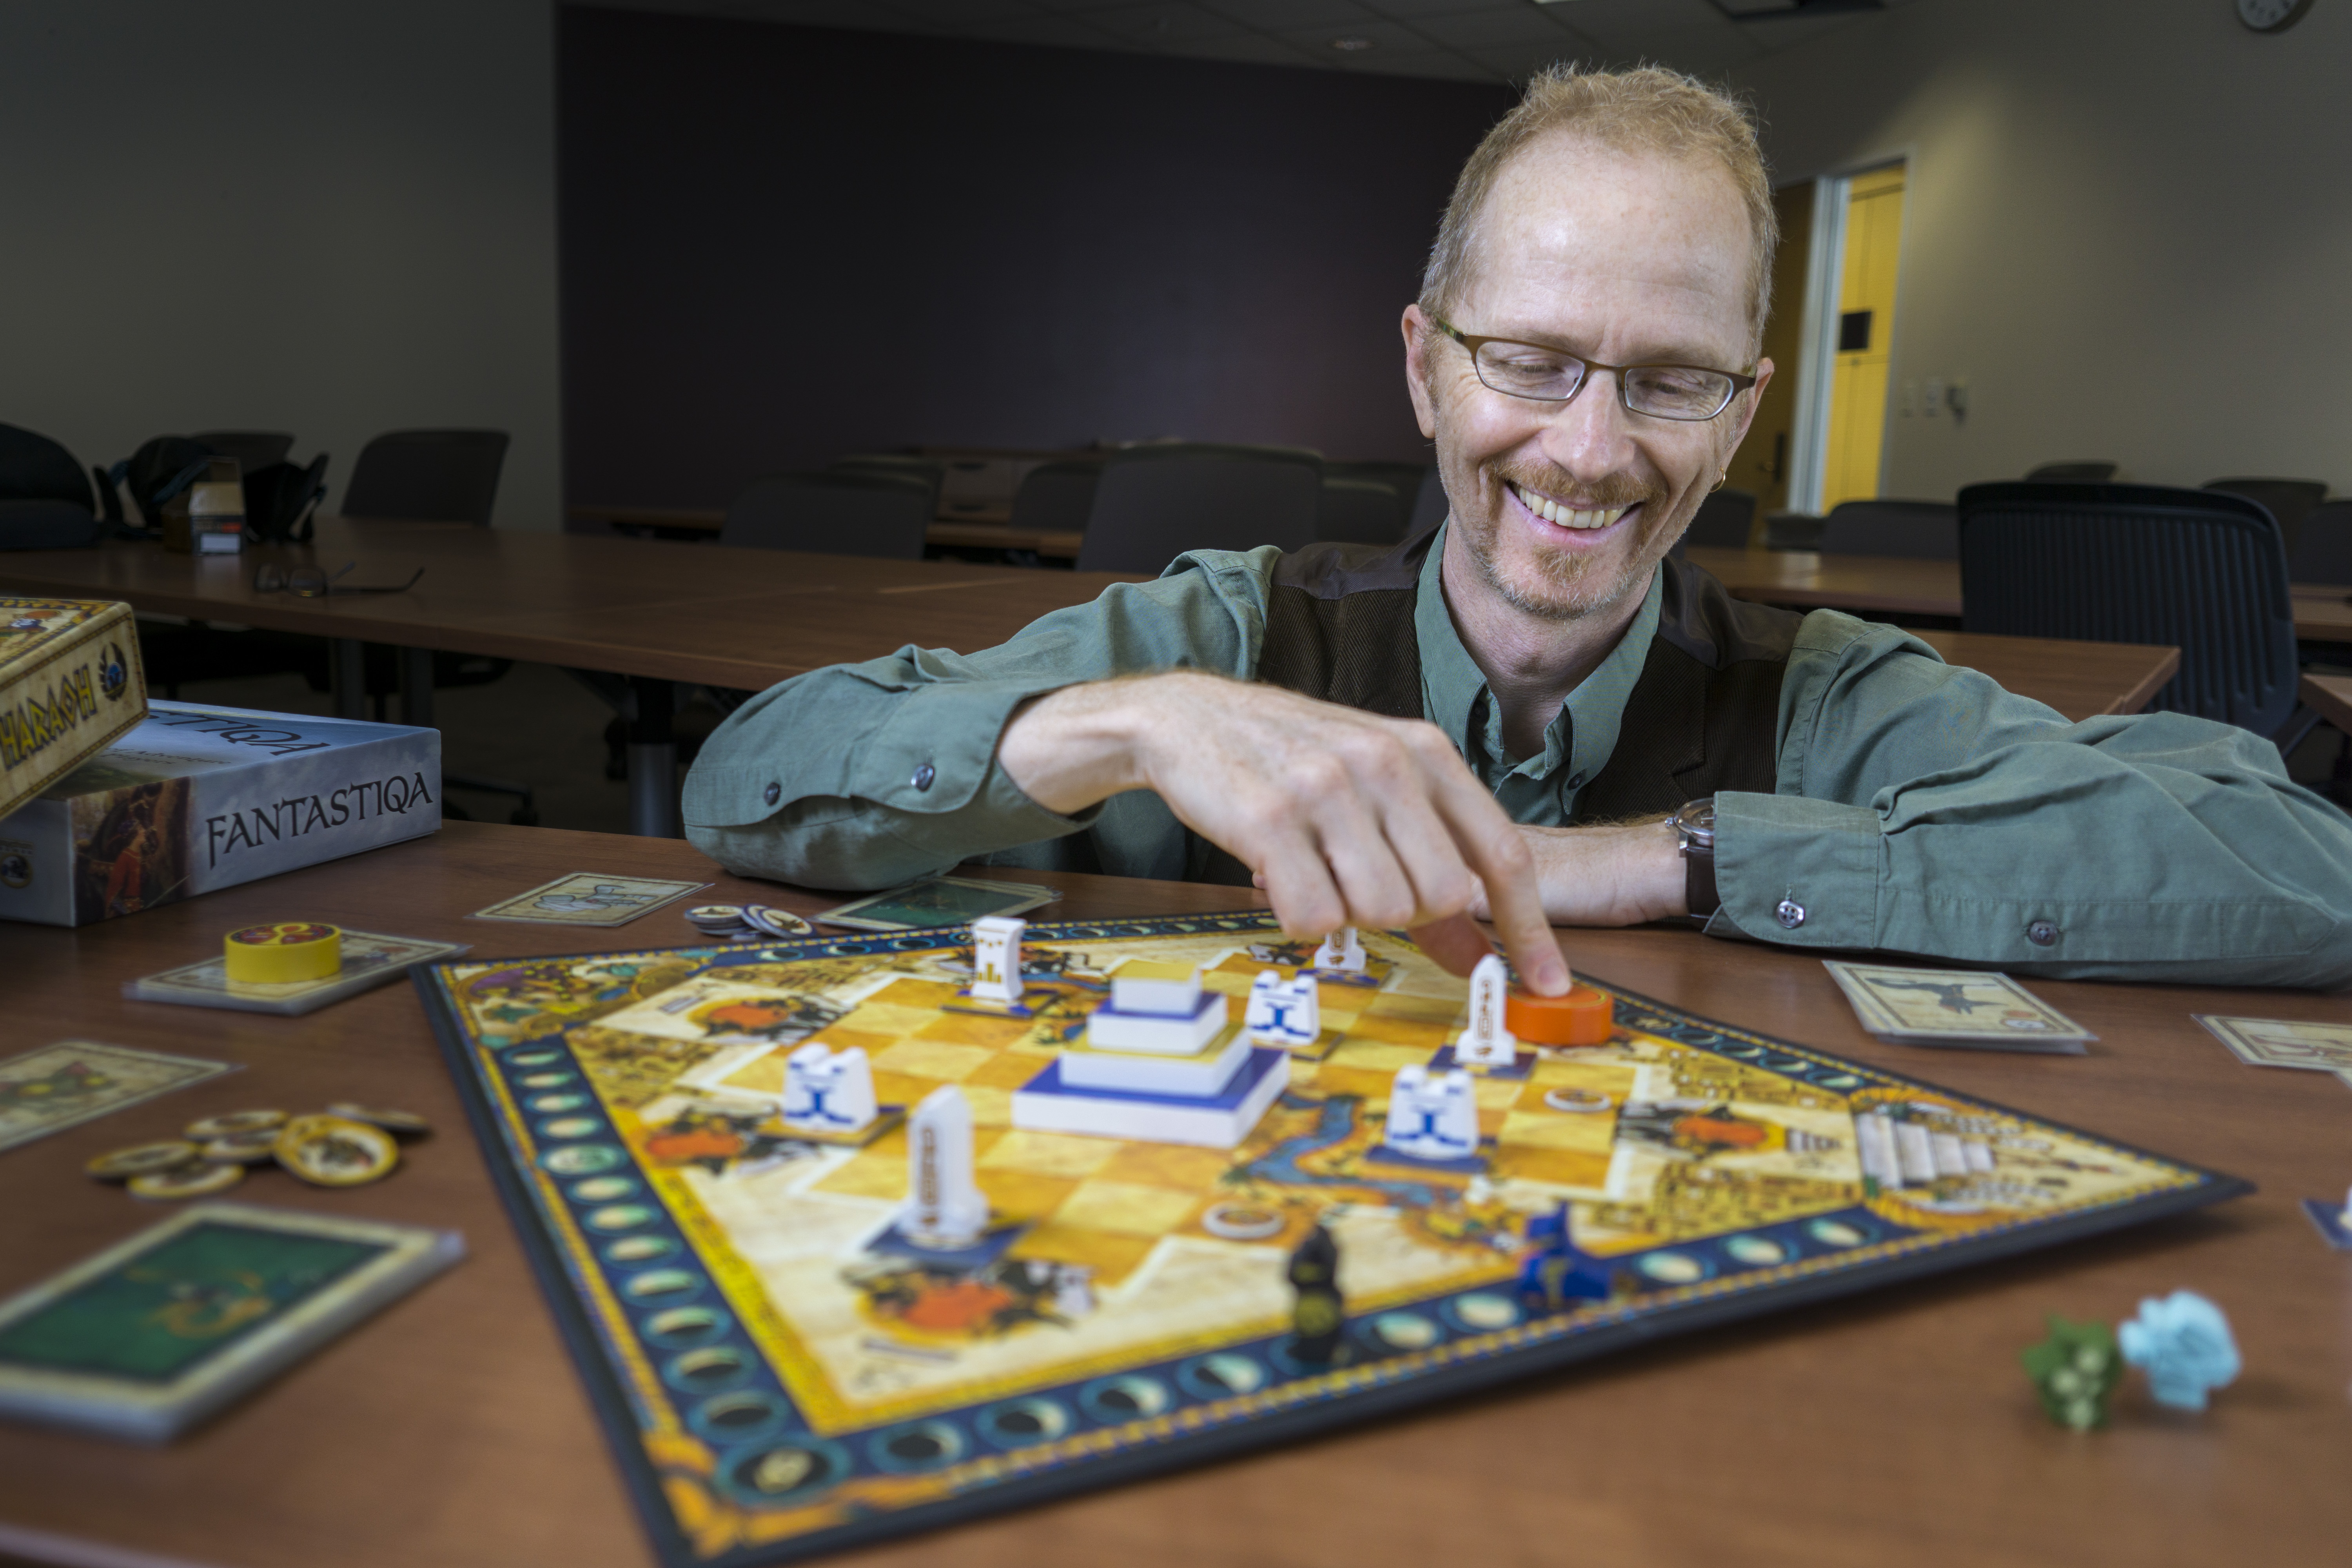 Alf Seegert, assistant professor of English writes and designs storytelling board games